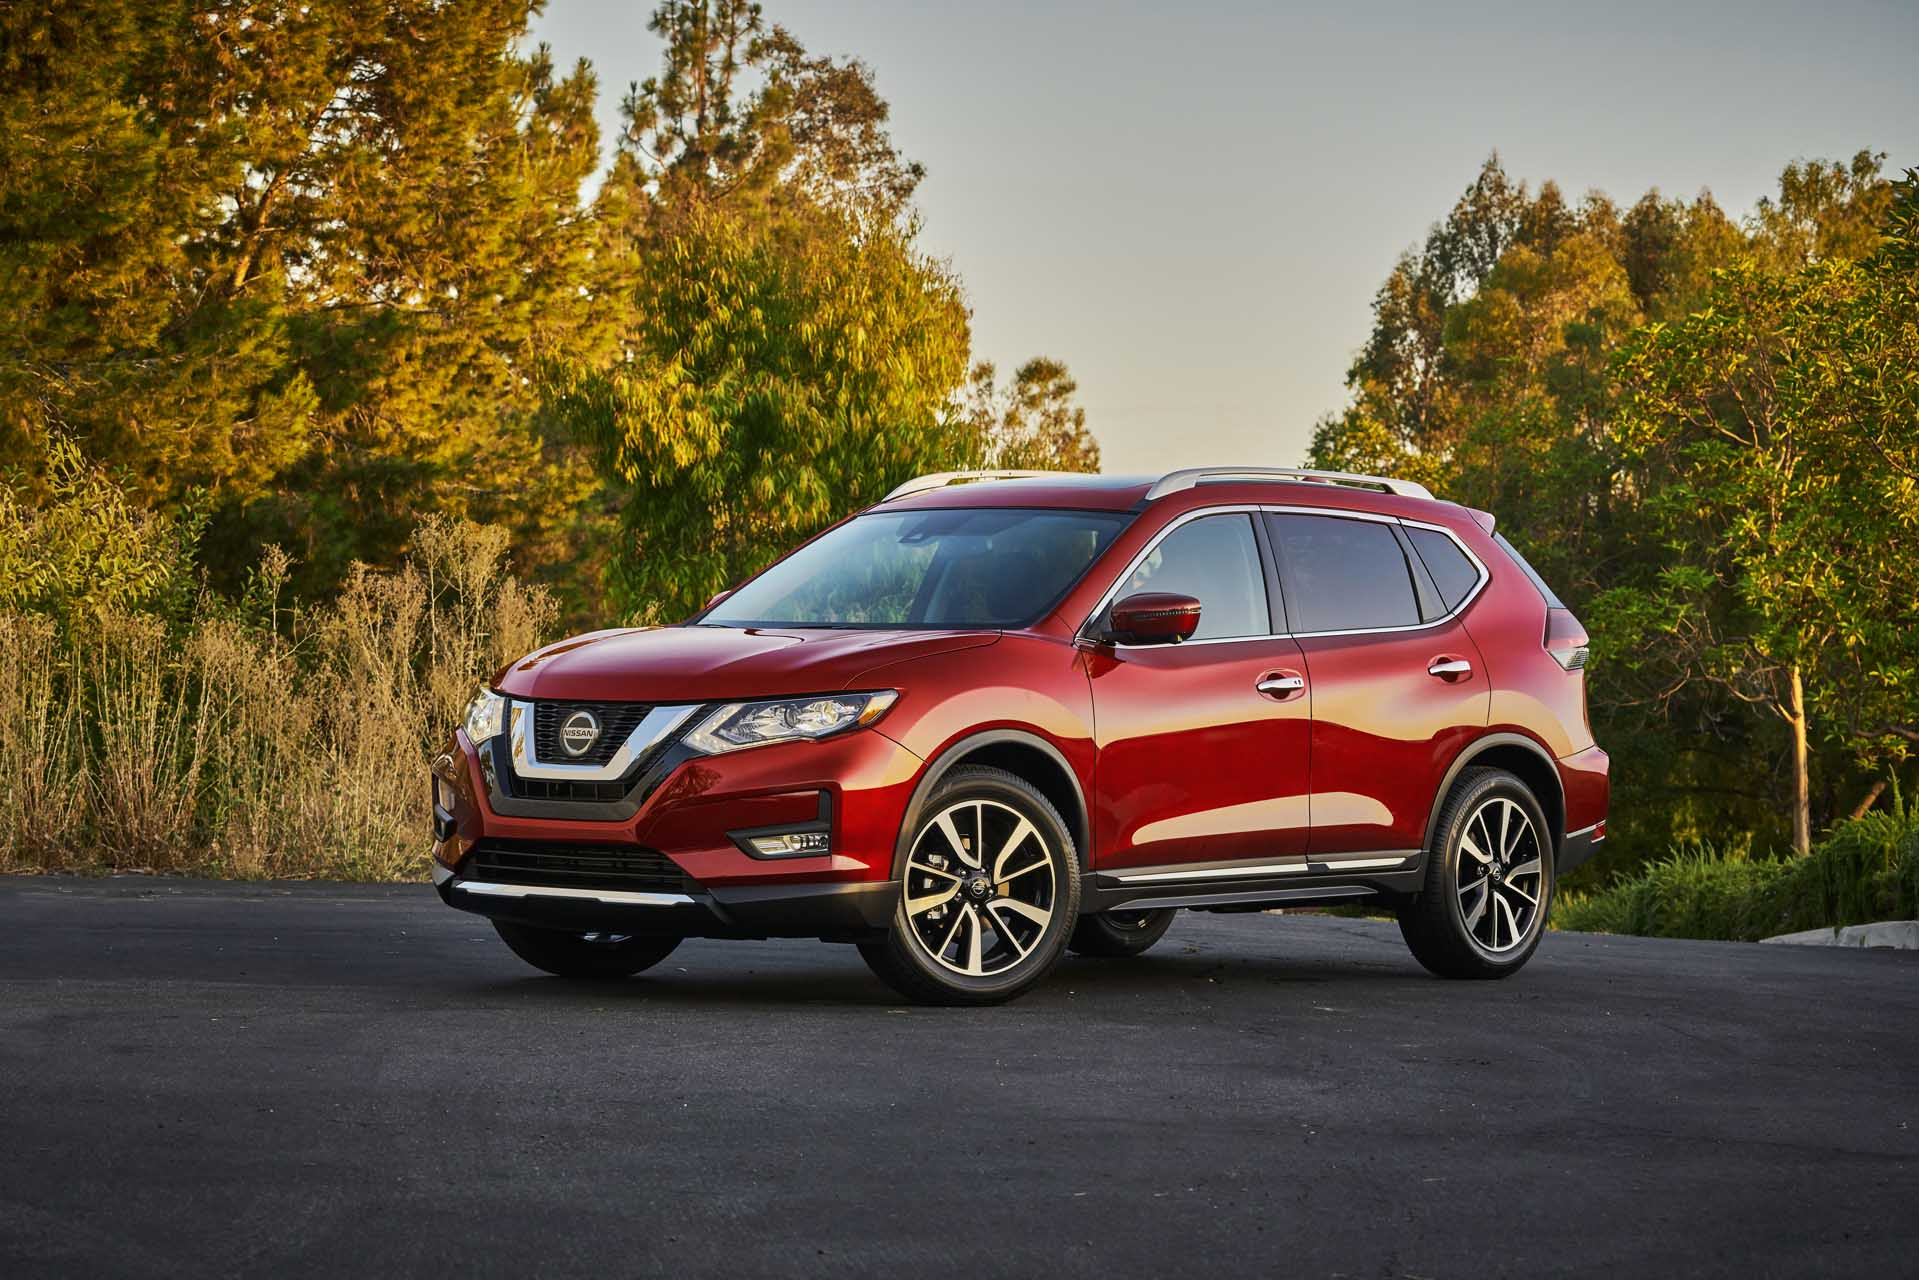 2020 Nissan Rogue Review, Ratings, Specs, Prices, and ...